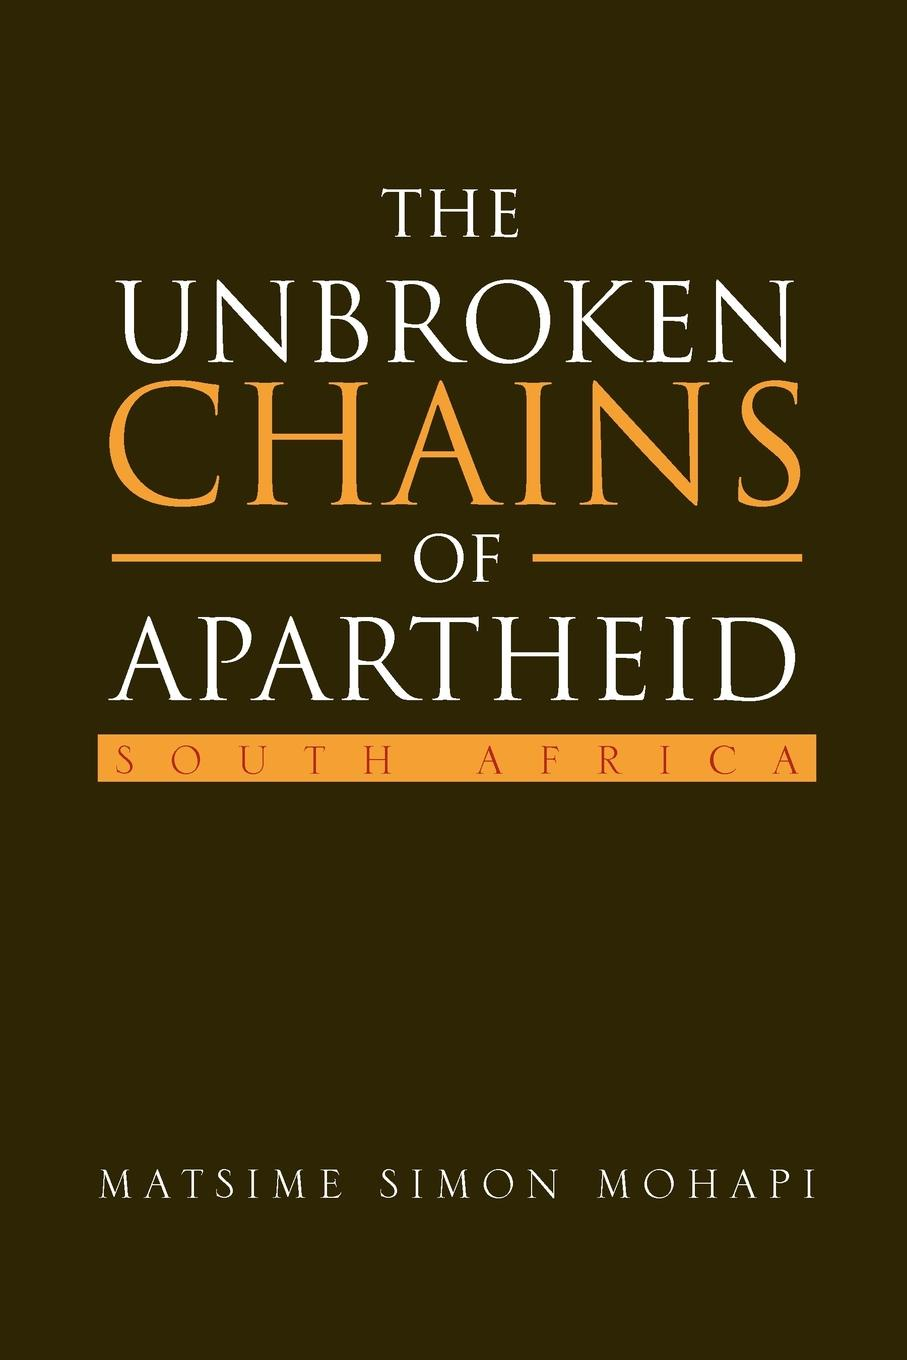 Matsime Simon Mohapi The Unbroken Chains of Apartheid. SOUTH AFRICA a promise unbroken